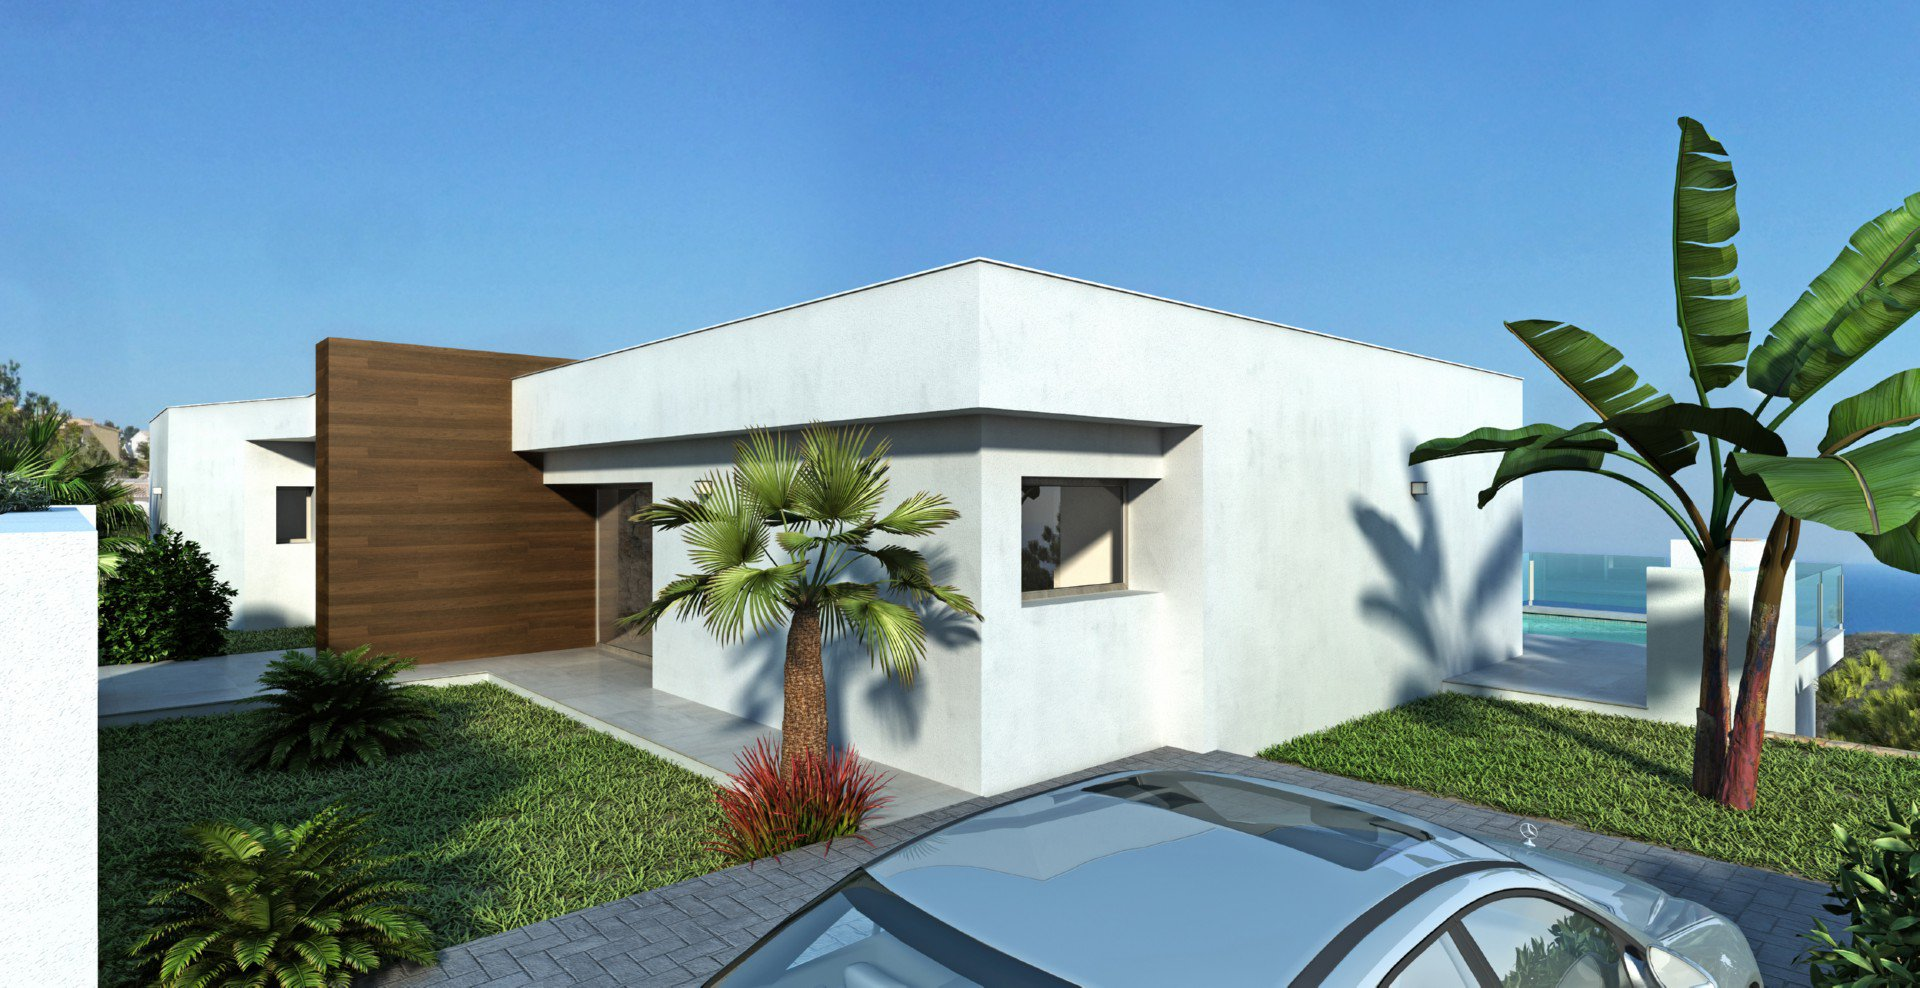 Villa exclusive avec un design moderne